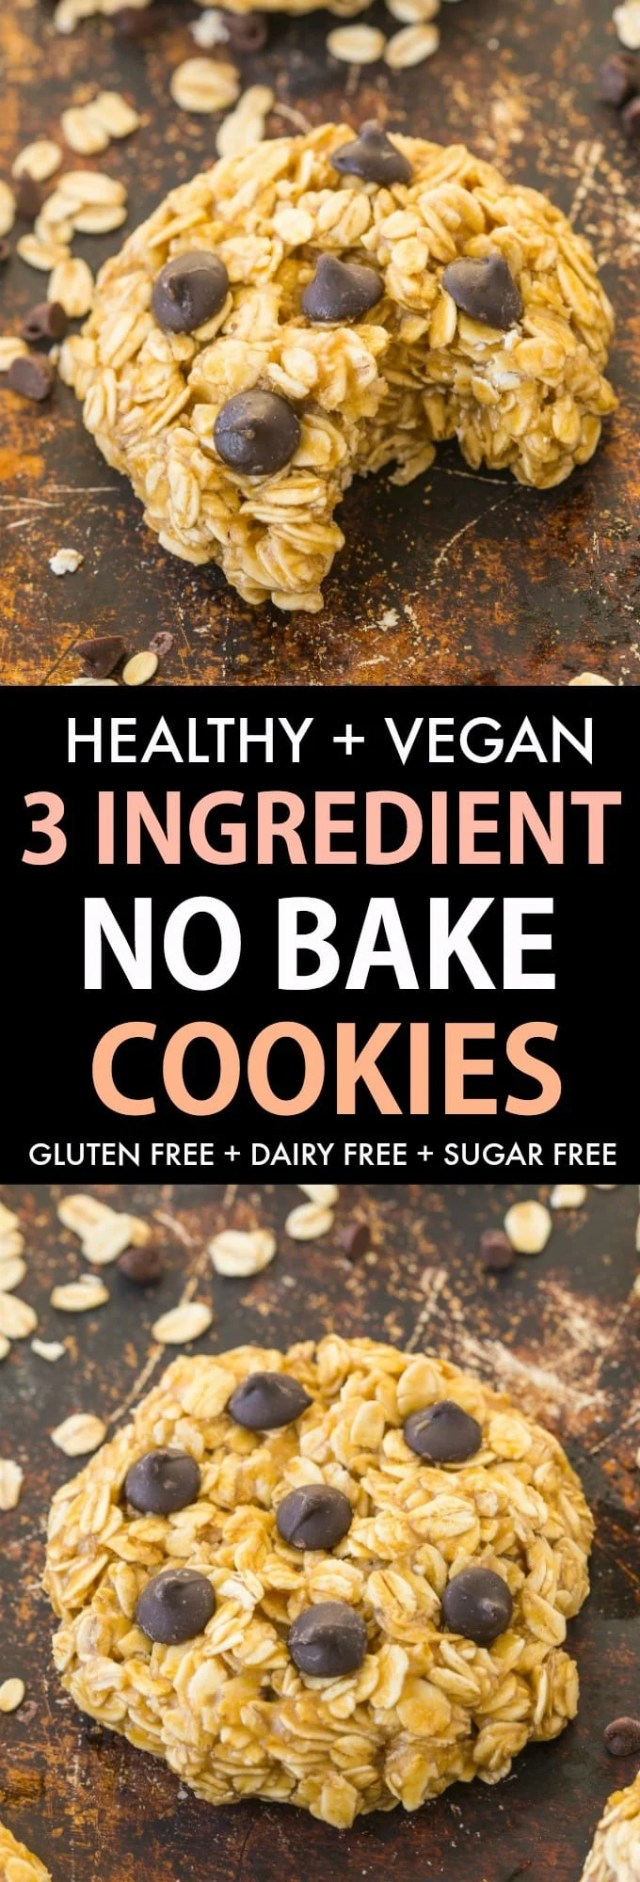 3 Ingredient Vegan No Bake Cookies with oatmeal and chocolate chips